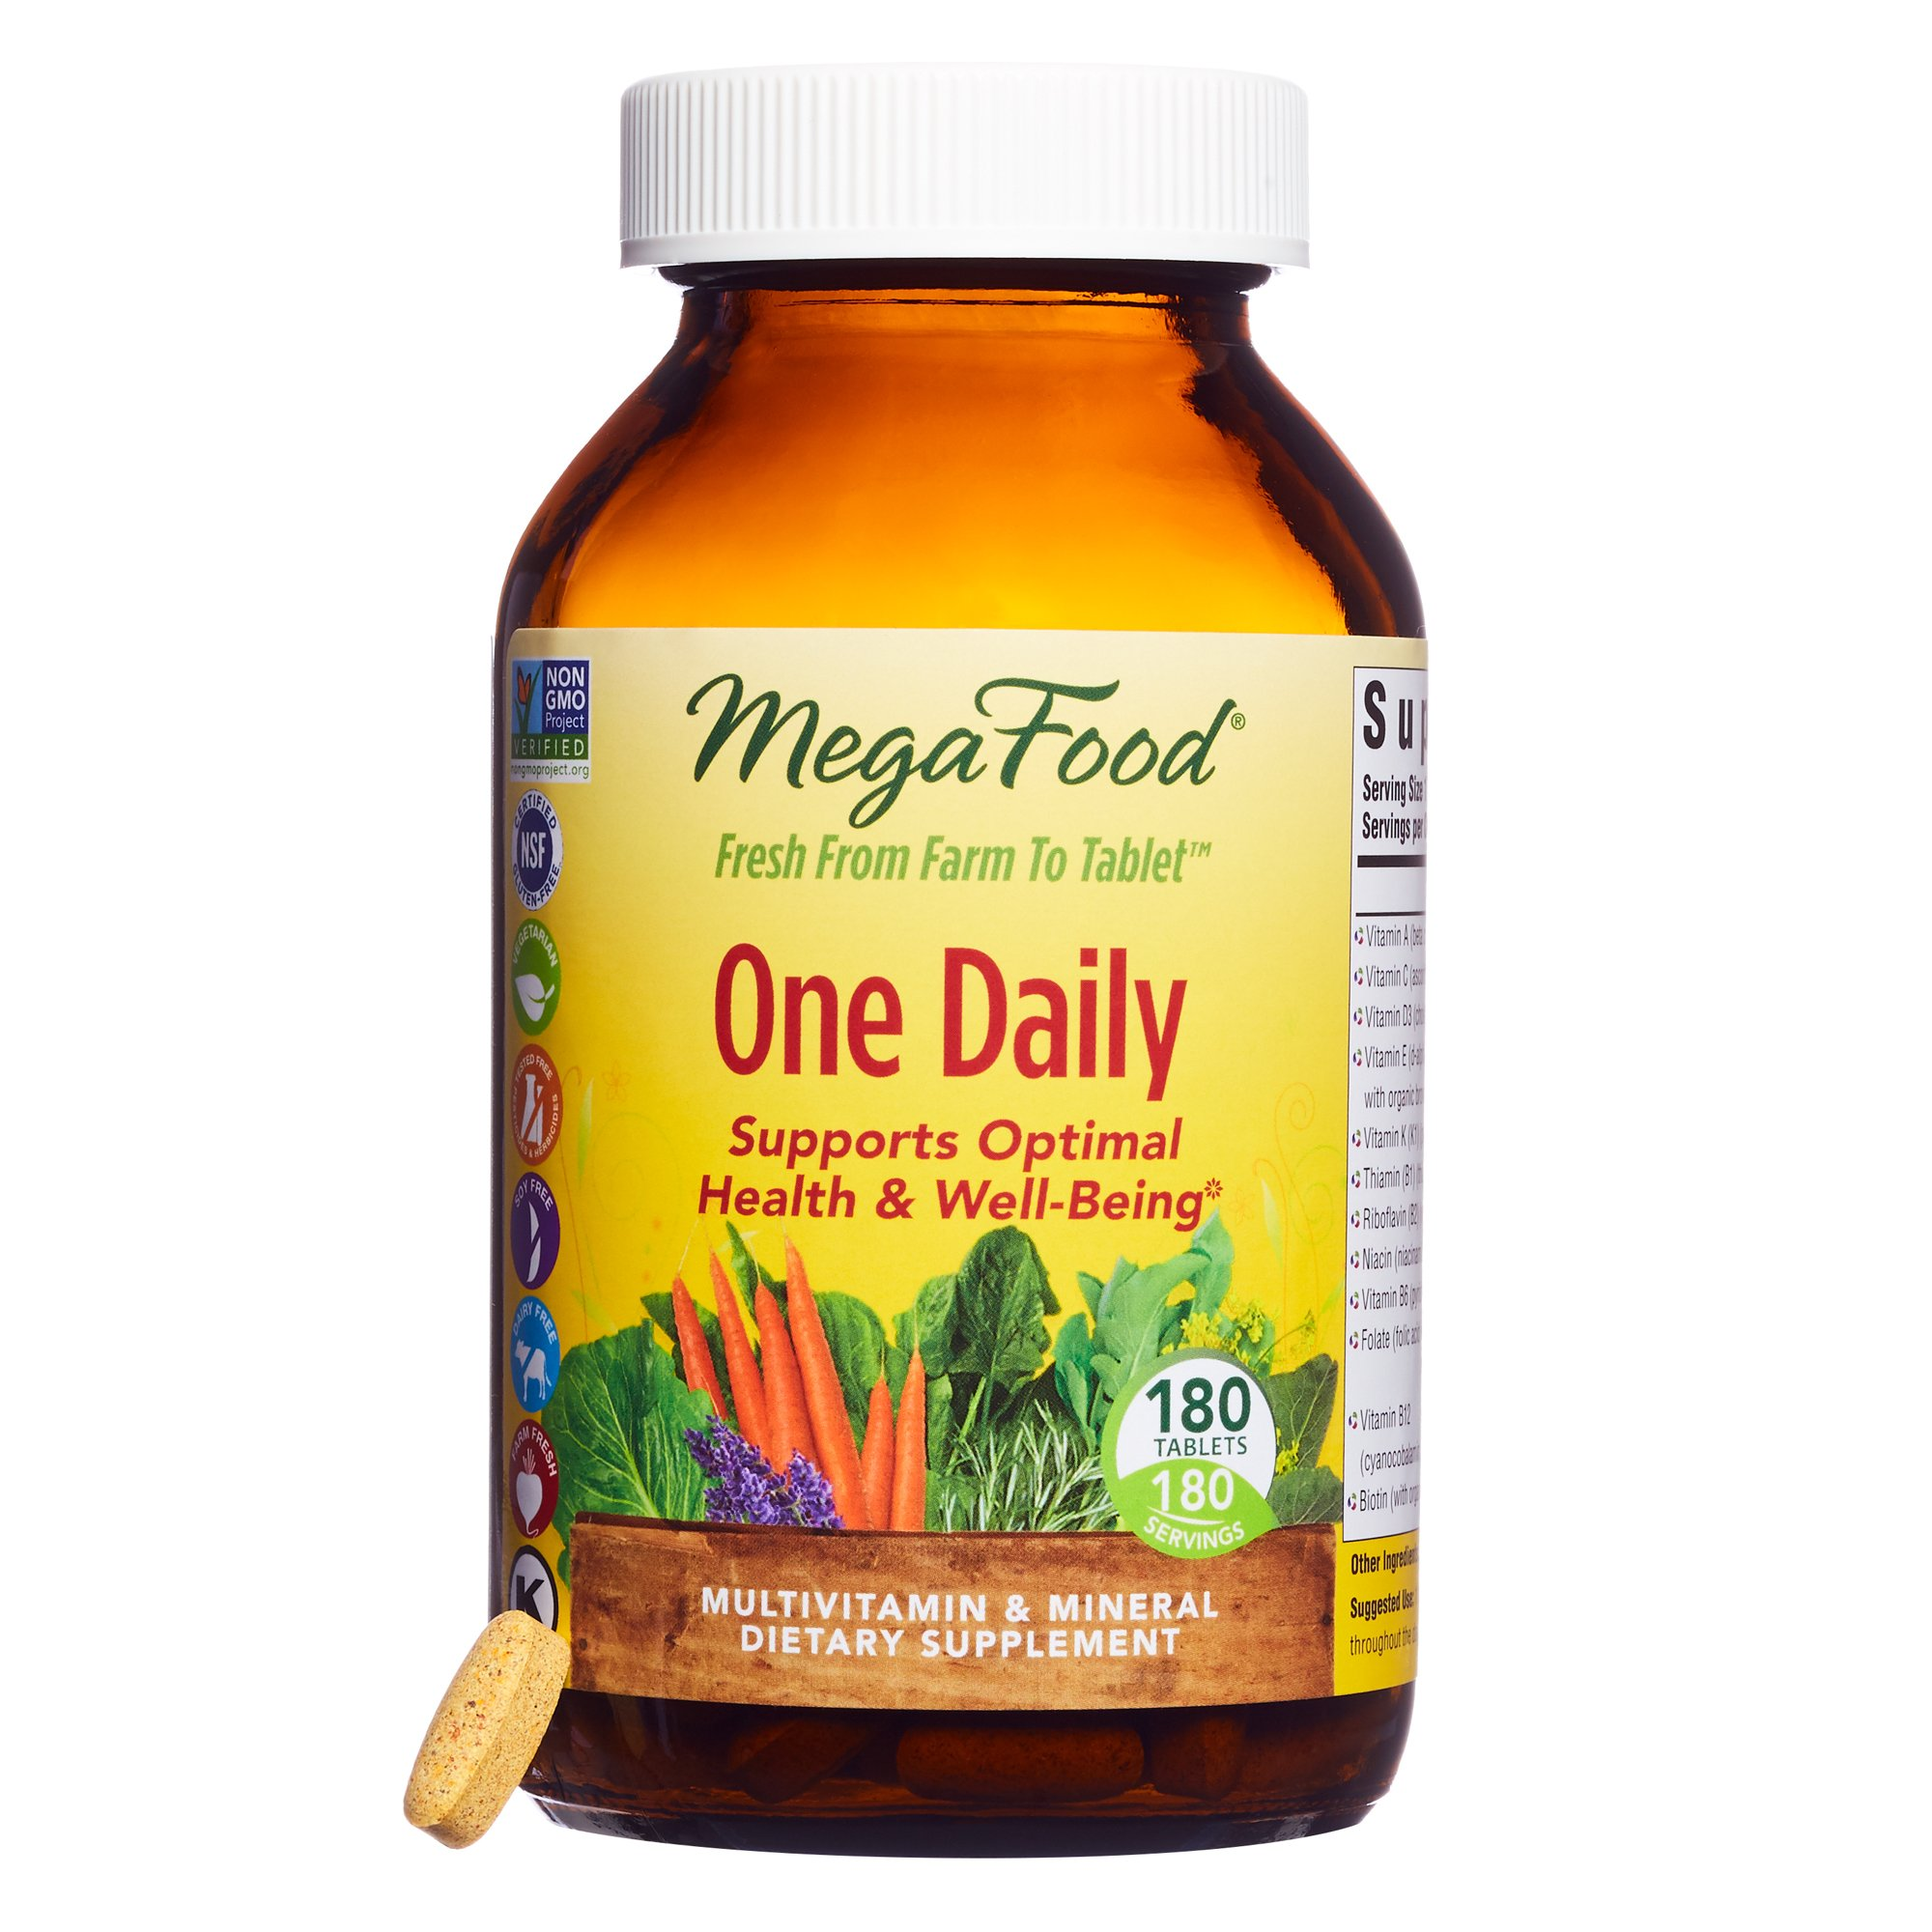 MegaFood - One Daily, Multivitamin Support for Immune and Nervous System Health, Energy Production, and Mood Balance with Folate and B Vitamins, Vegetarian, Gluten-Free, Non-GMO, 180 Count, Pack of 1